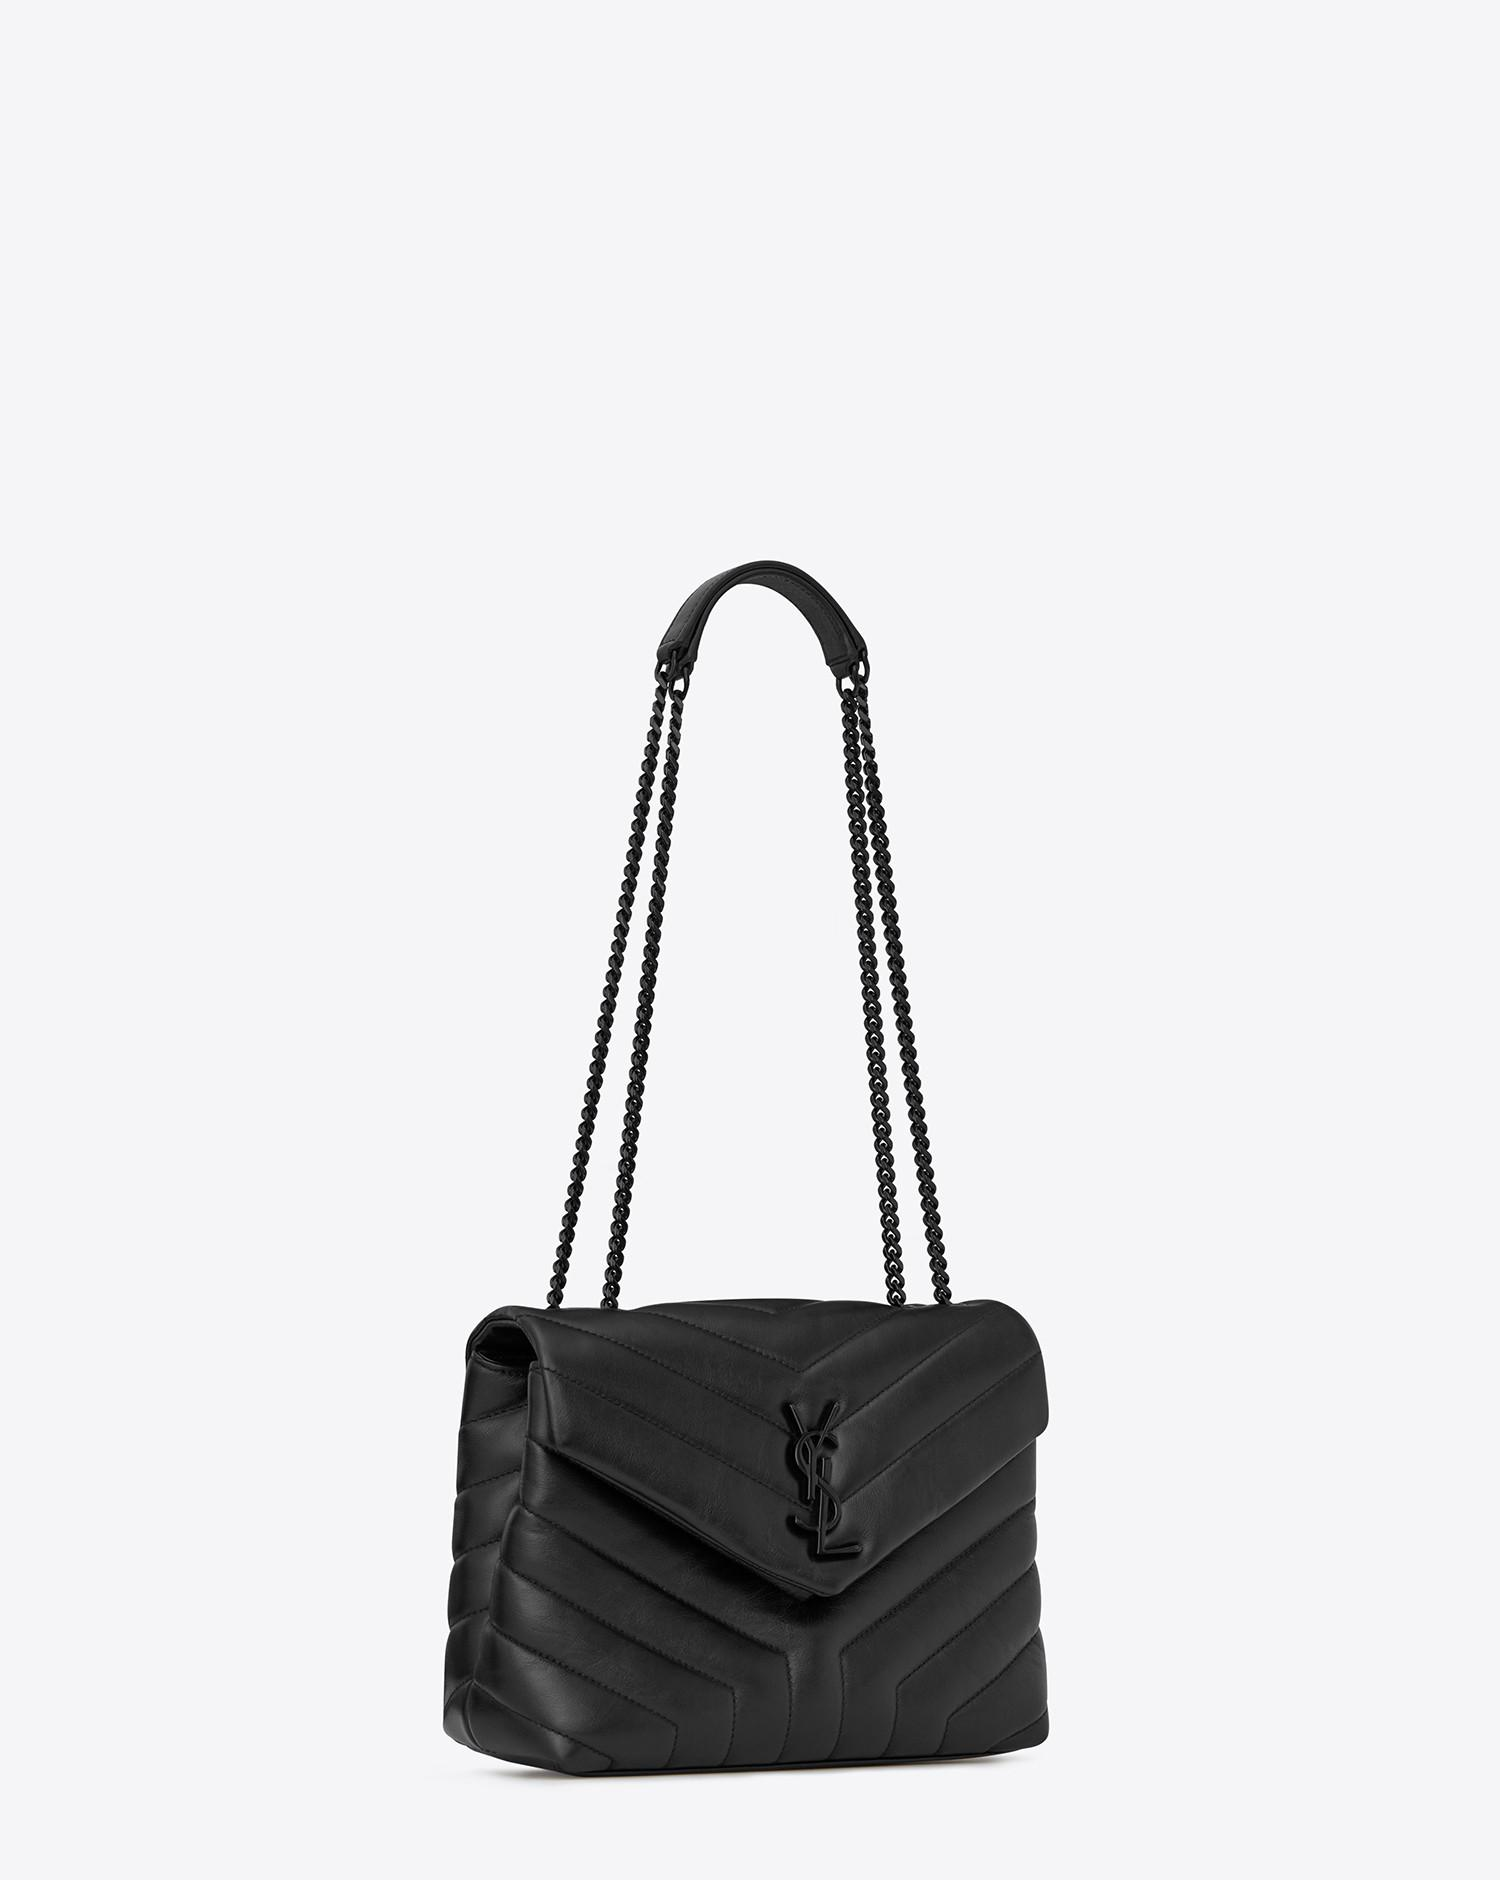 09a5e45aa4 Saint Laurent Monogramme Loulou in Black - Lyst